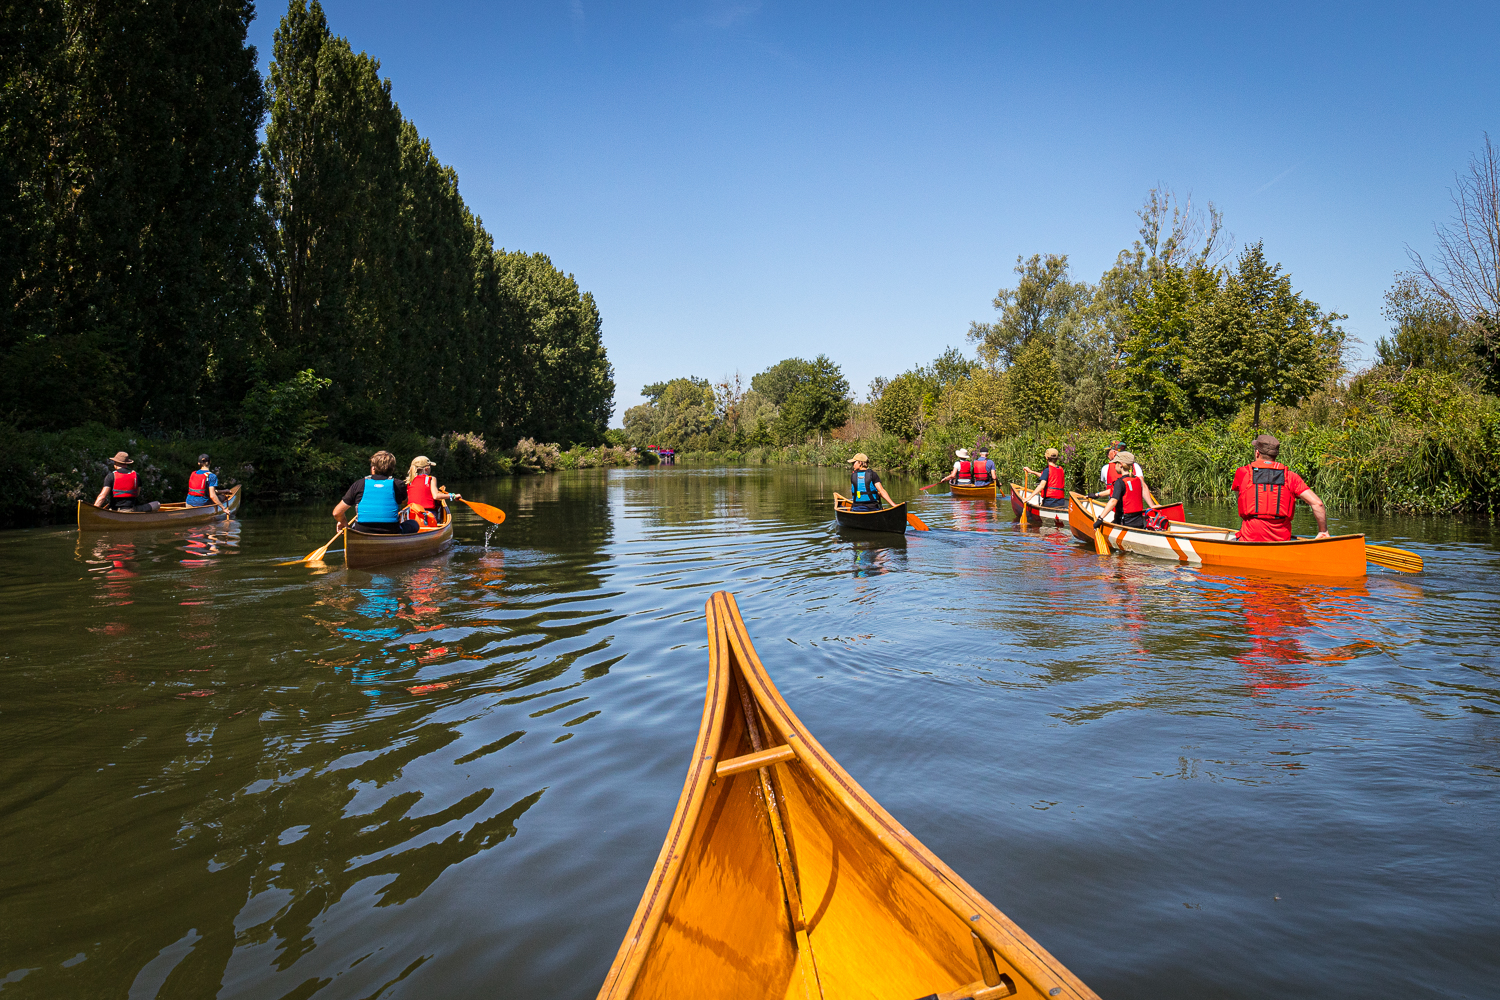 Freeranger canoe guided canoe trips on the Somme River